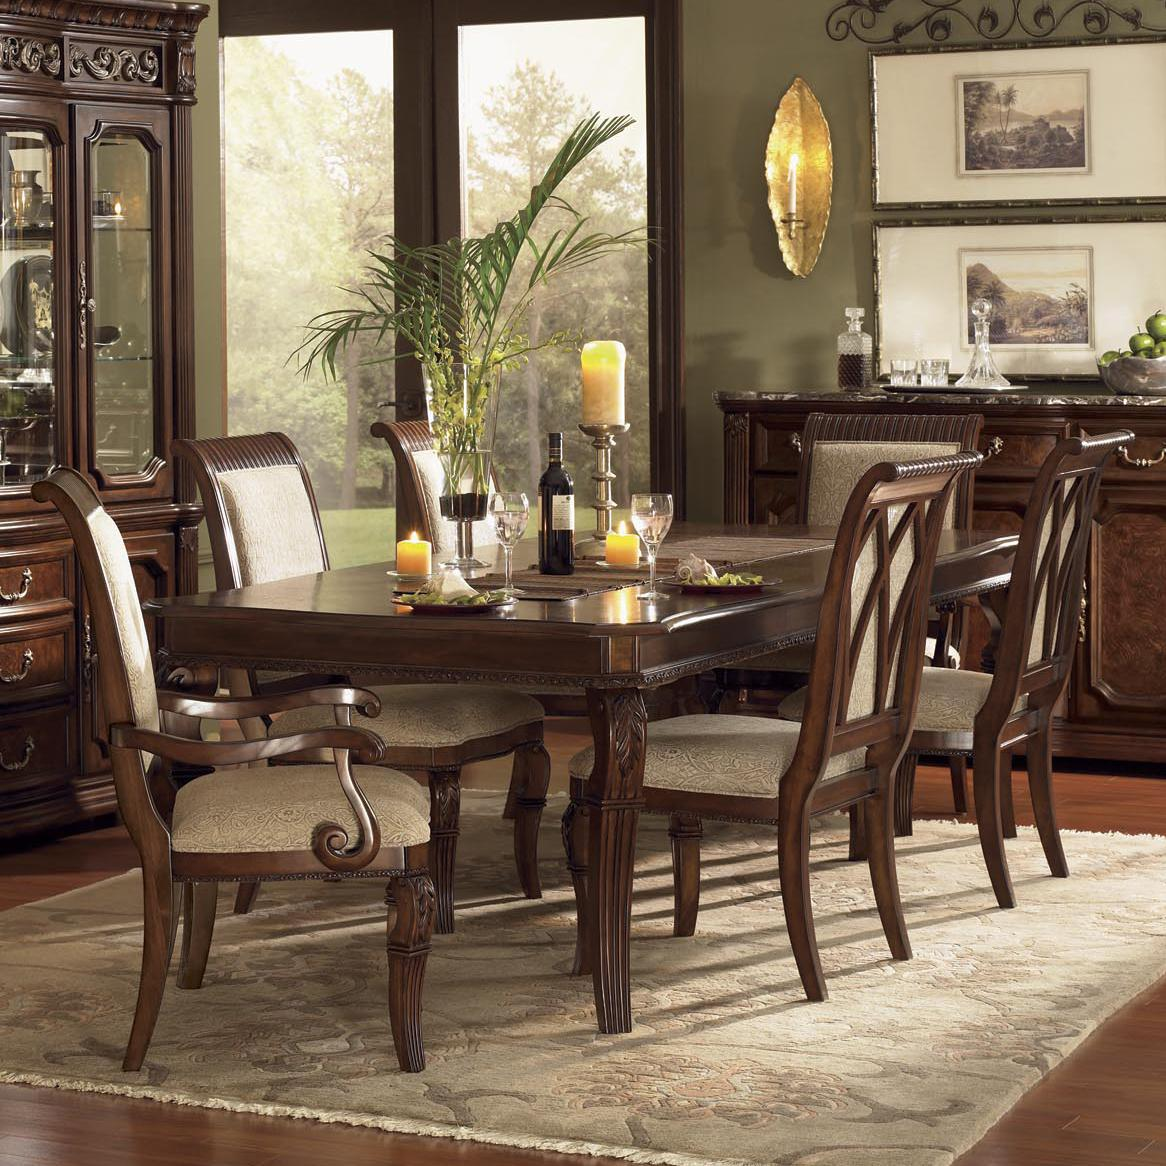 Flexsteel Wynwood Collection Granada Dining Room Set With Upholstered Chairs    AHFA   Dining 7 (or More) Piece Set Dealer Locator